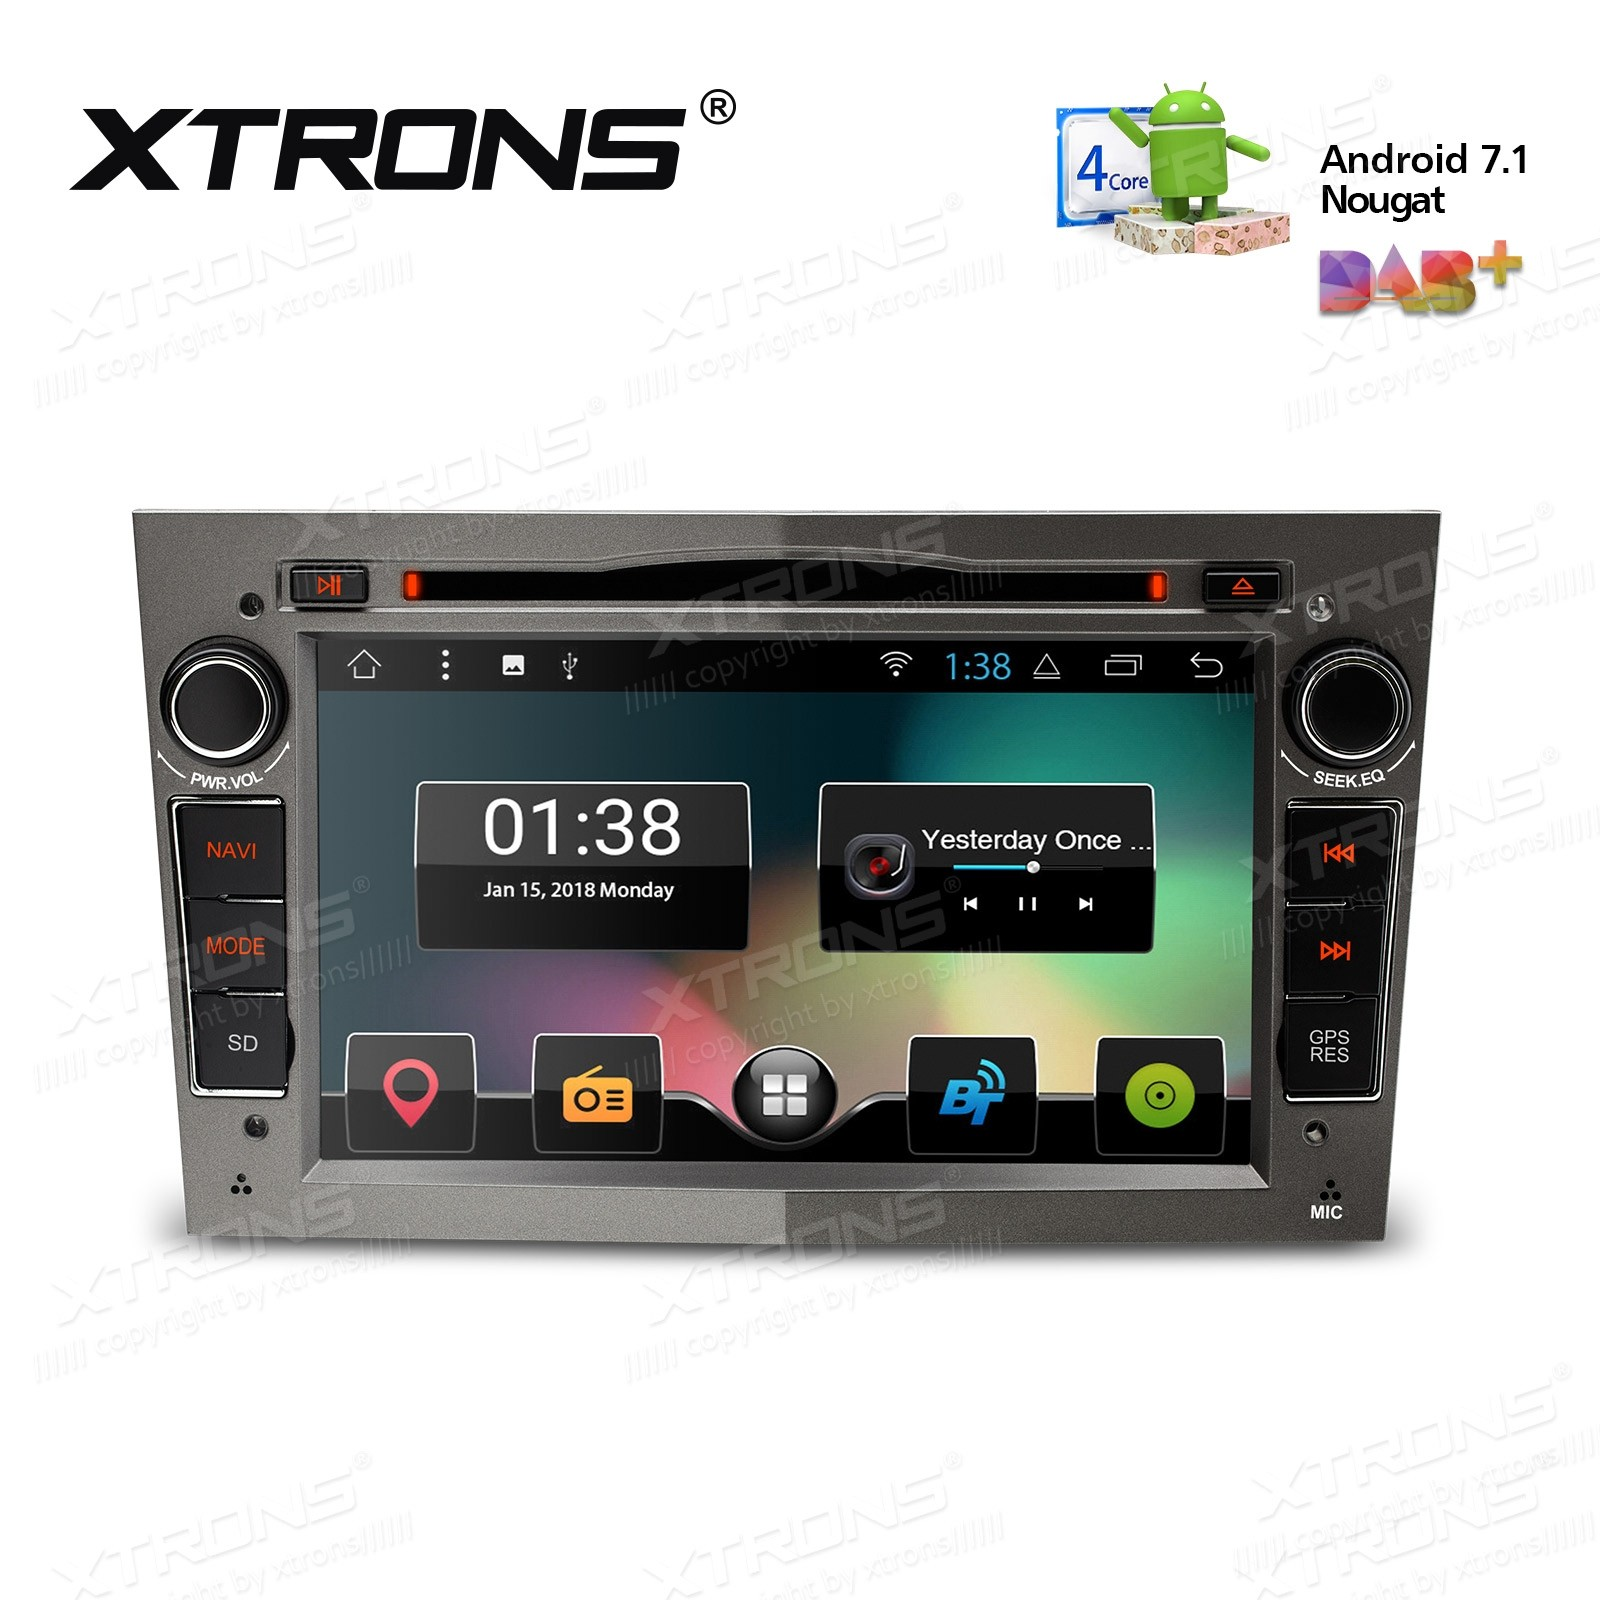 """7"""" Android 7.1 Nougat Quad core 16GB ROM HD Digital Multi Touch Screen Car DVD Player Custom Fit for OPEL"""